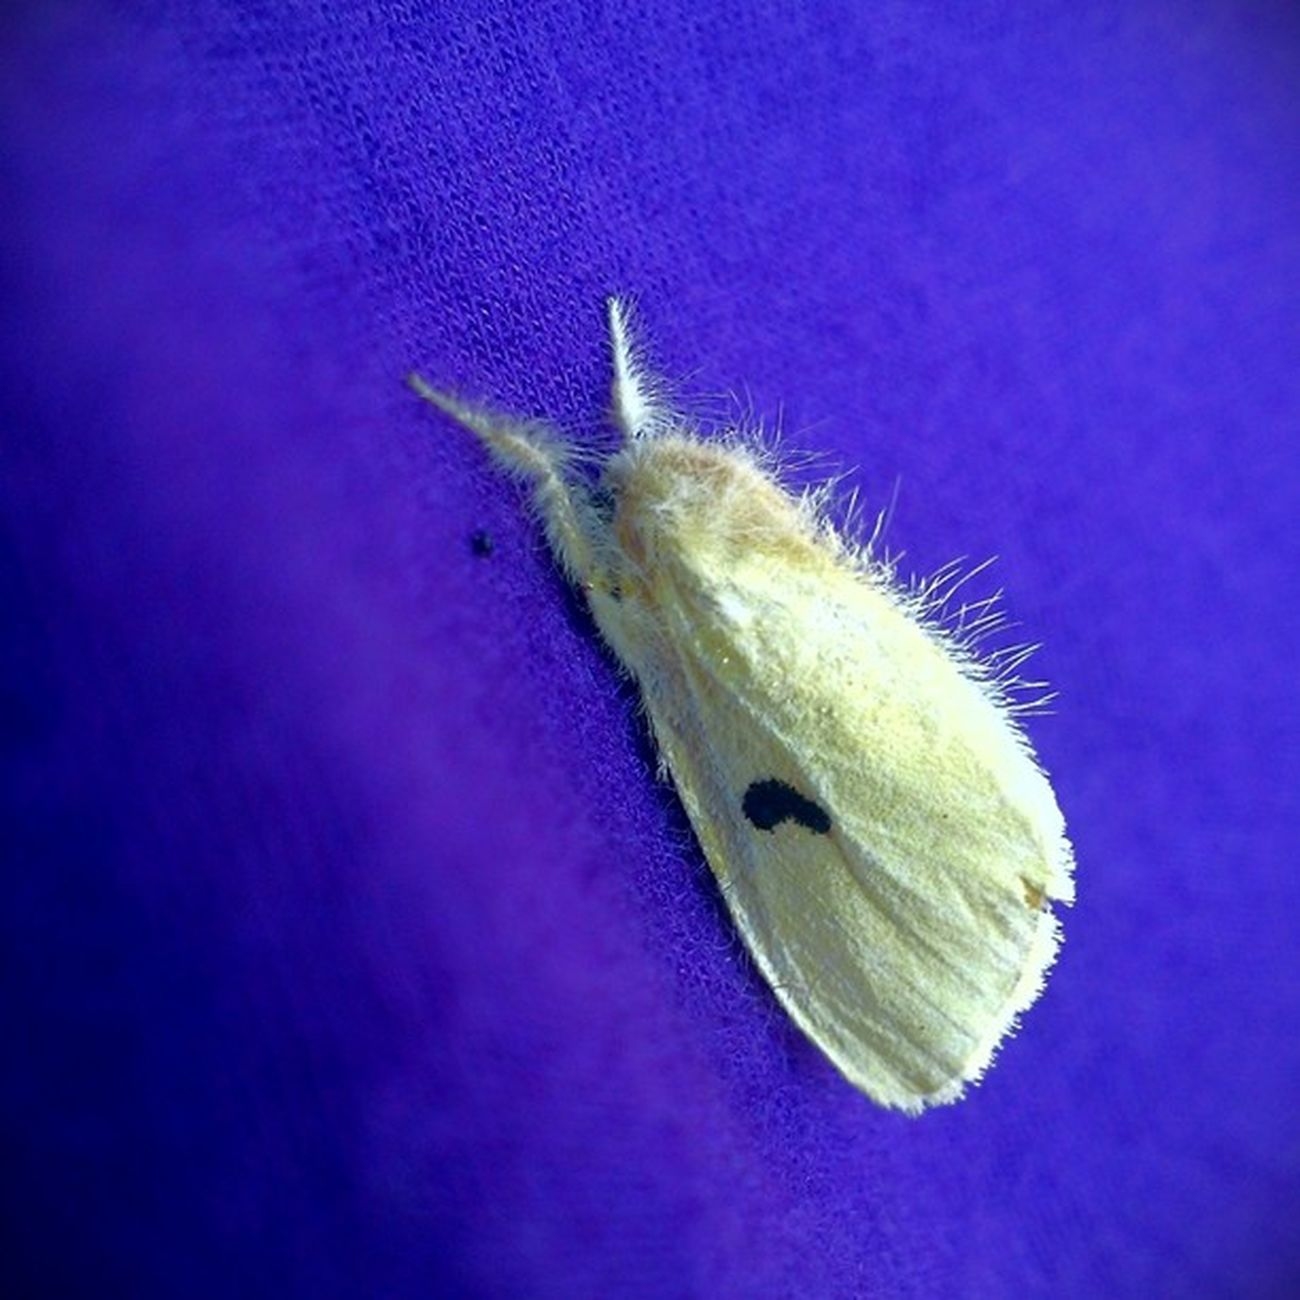 ลอกคราบ แมลงอะไร Slough off Moth Bug Butterfly Violet Htc8x Picoftheday